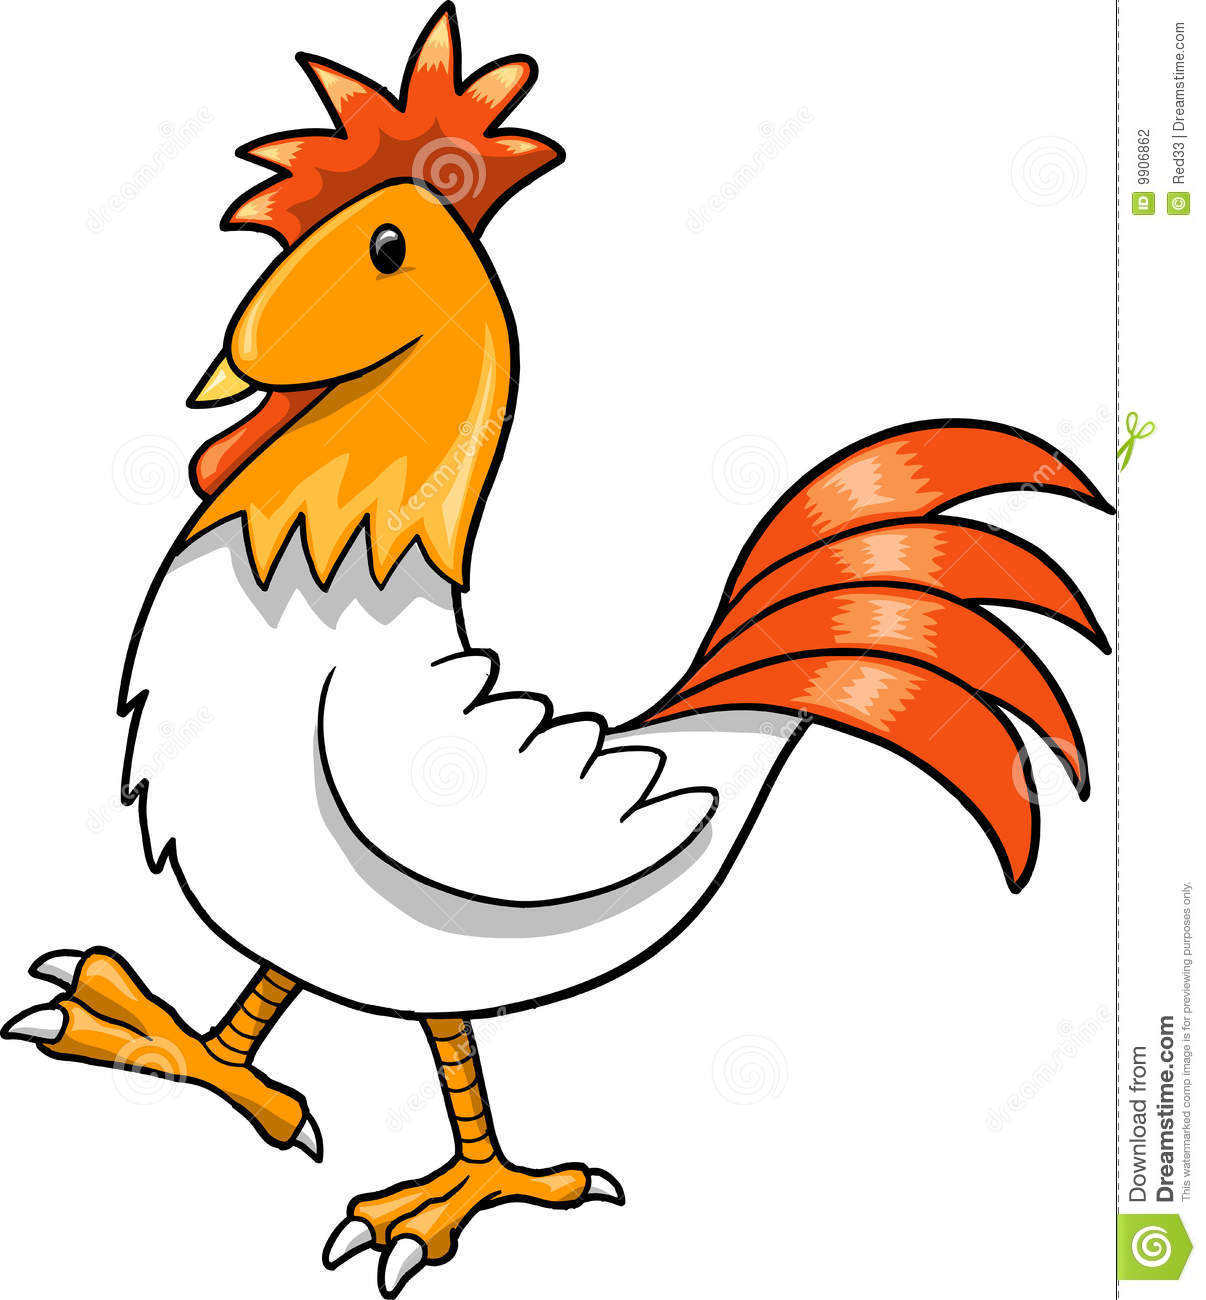 clipart rooster - photo #32